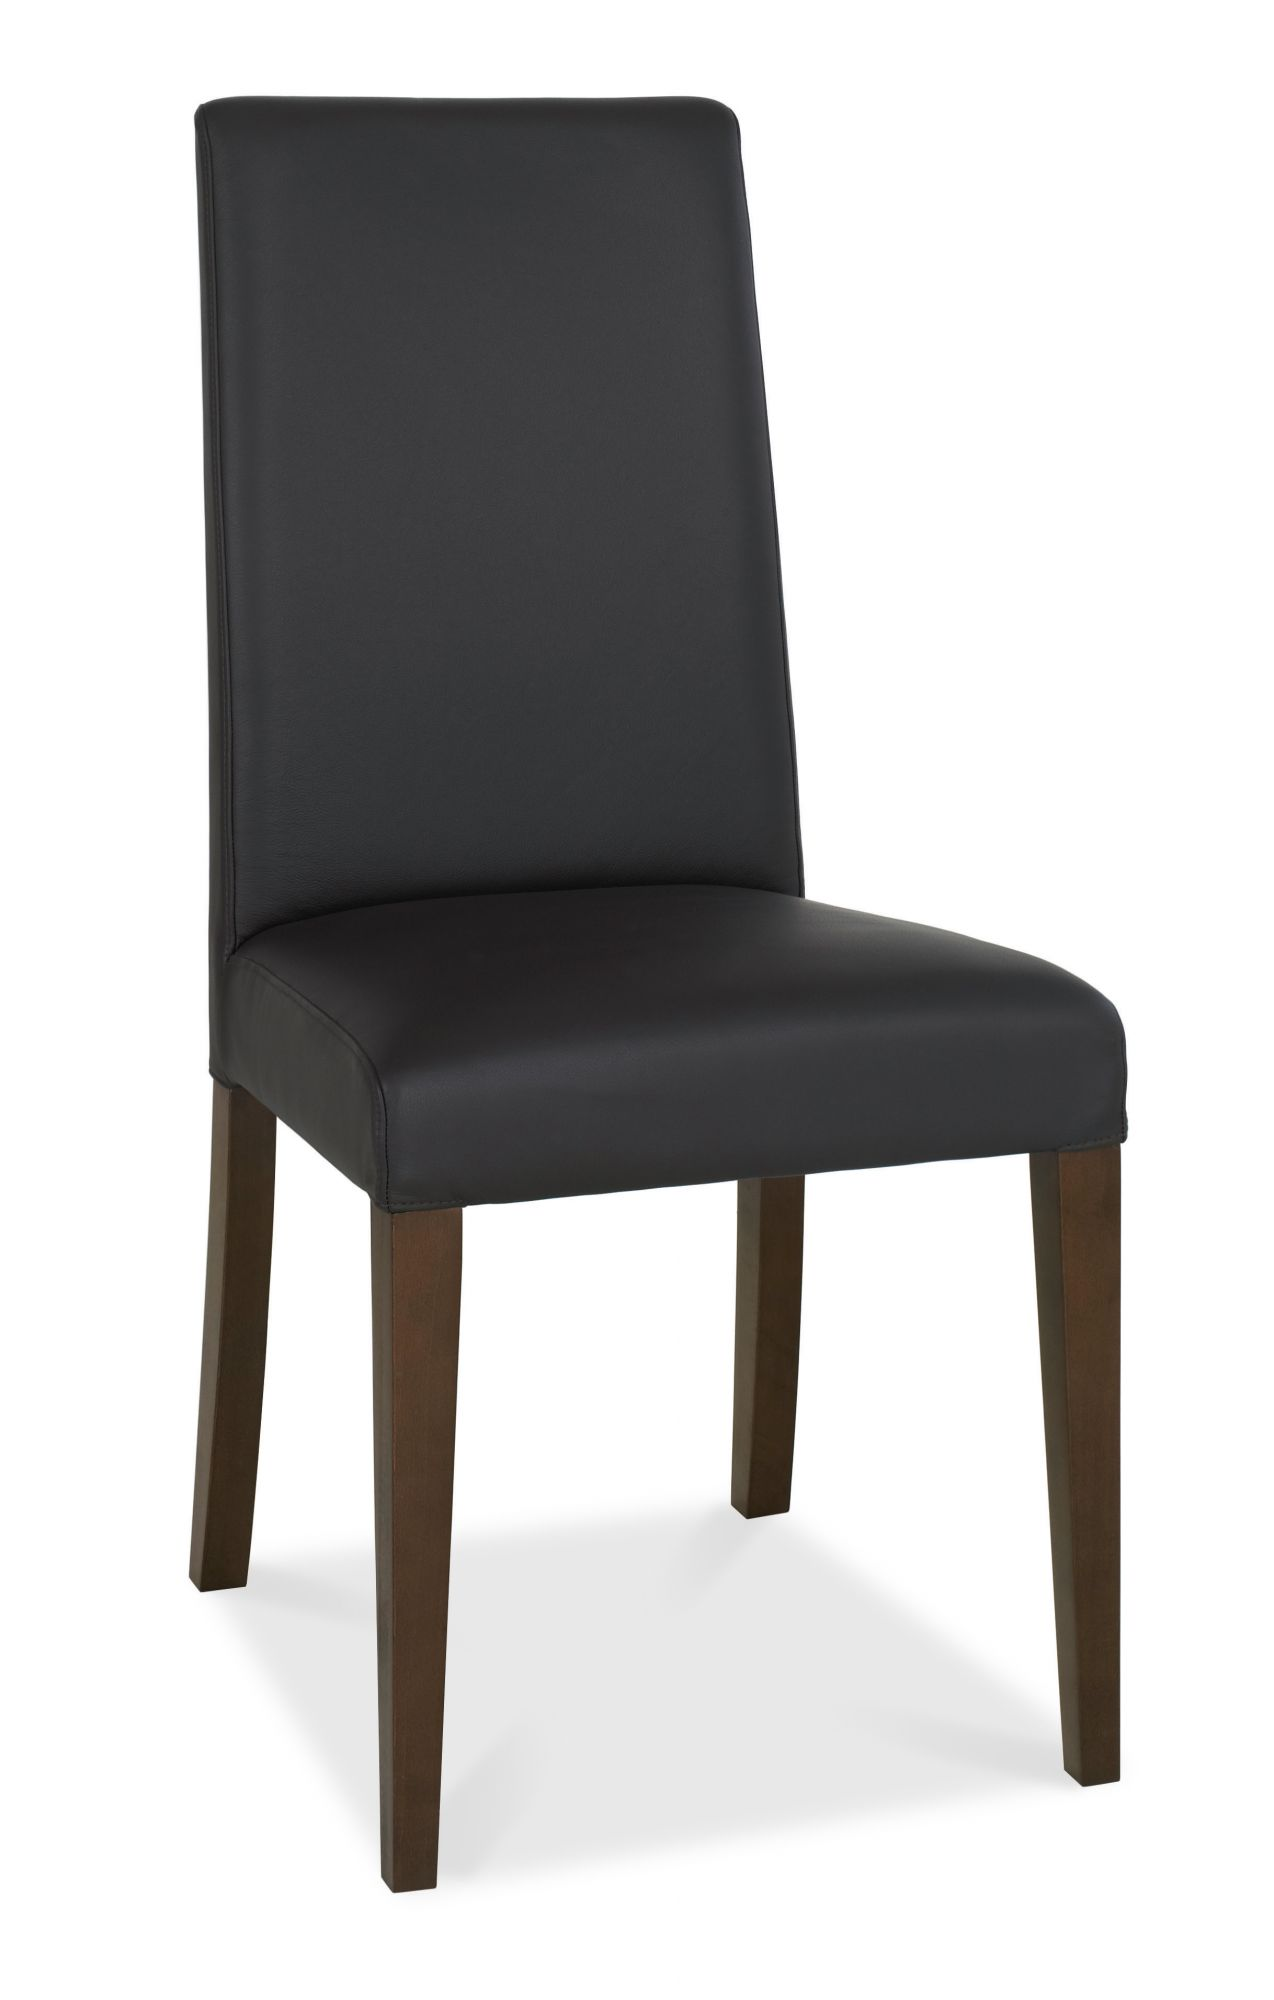 https://www.firstfurniture.co.uk/pub/media/catalog/product/3/5/352_1_11.jpg